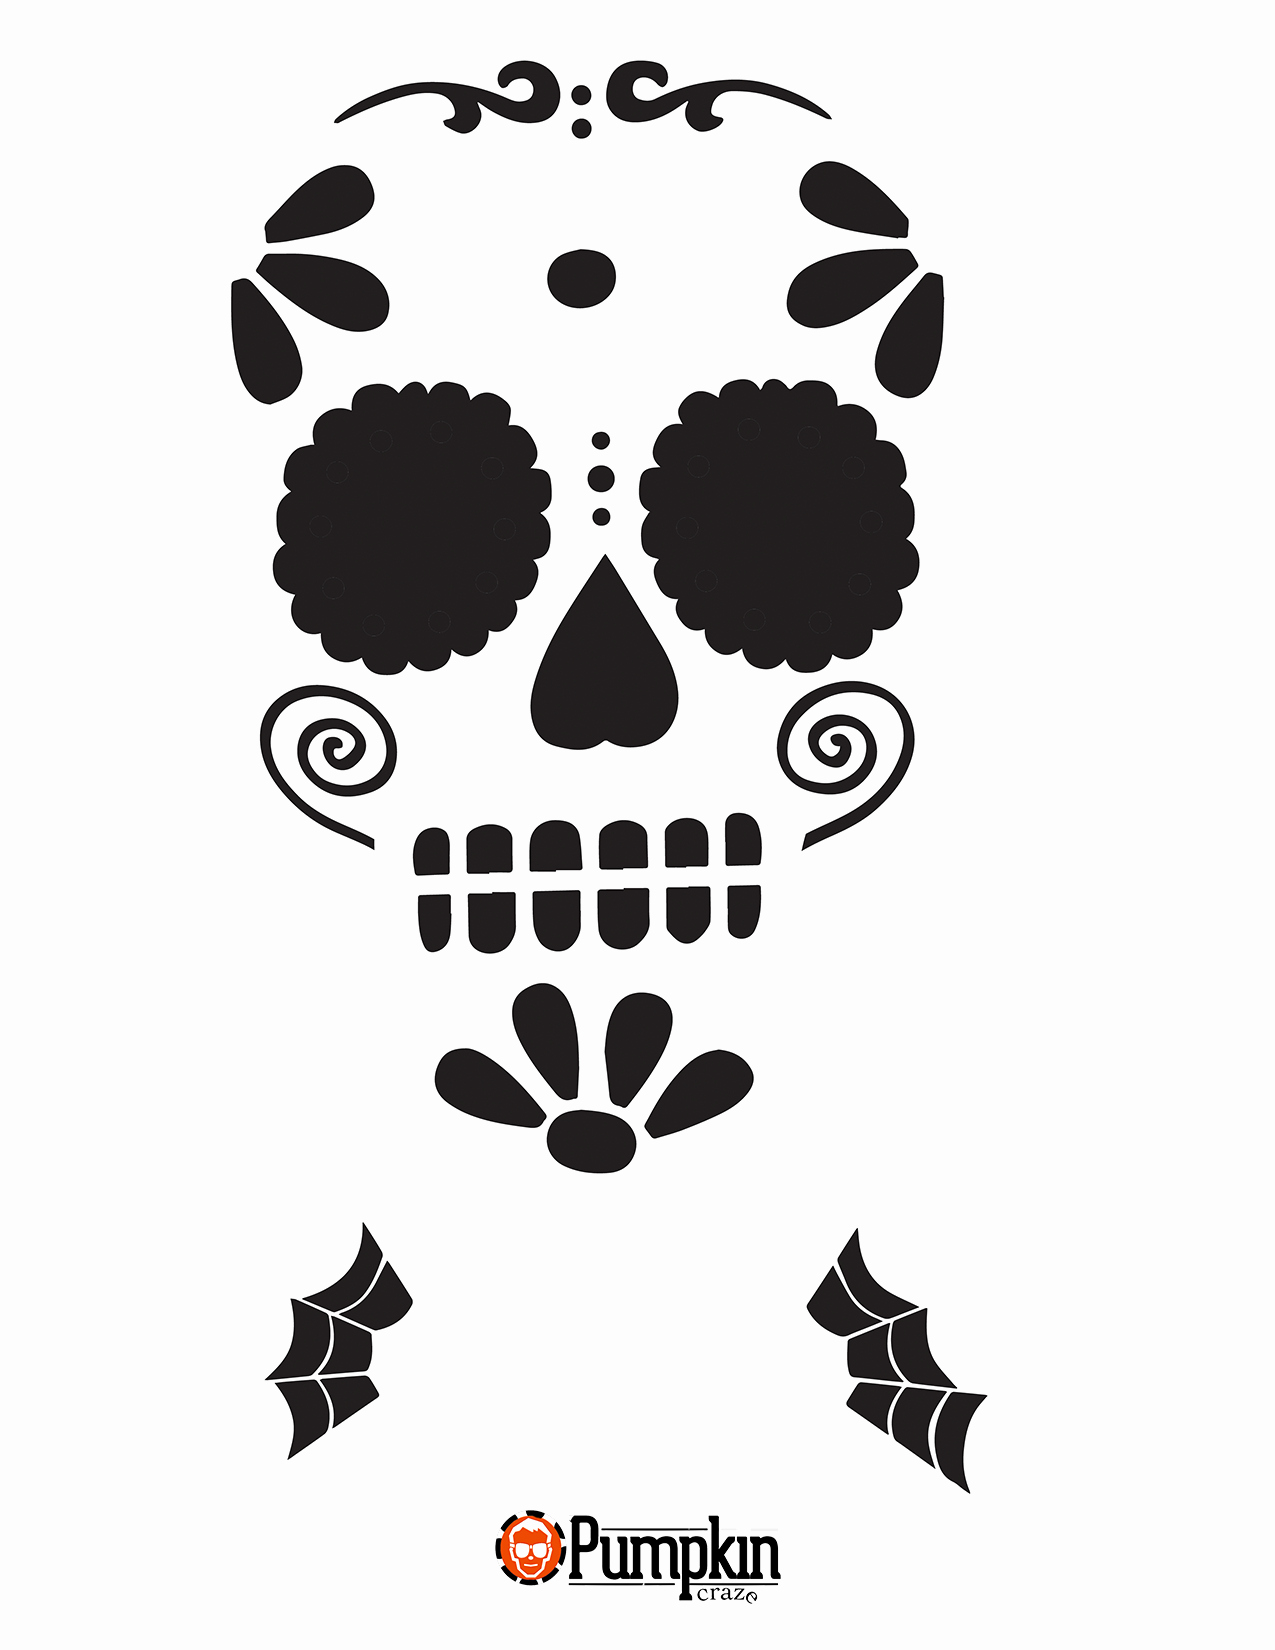 Sugar Skull Template Printable Beautiful Looking for Free Pumpkin Patterns You Can Find Easy Free